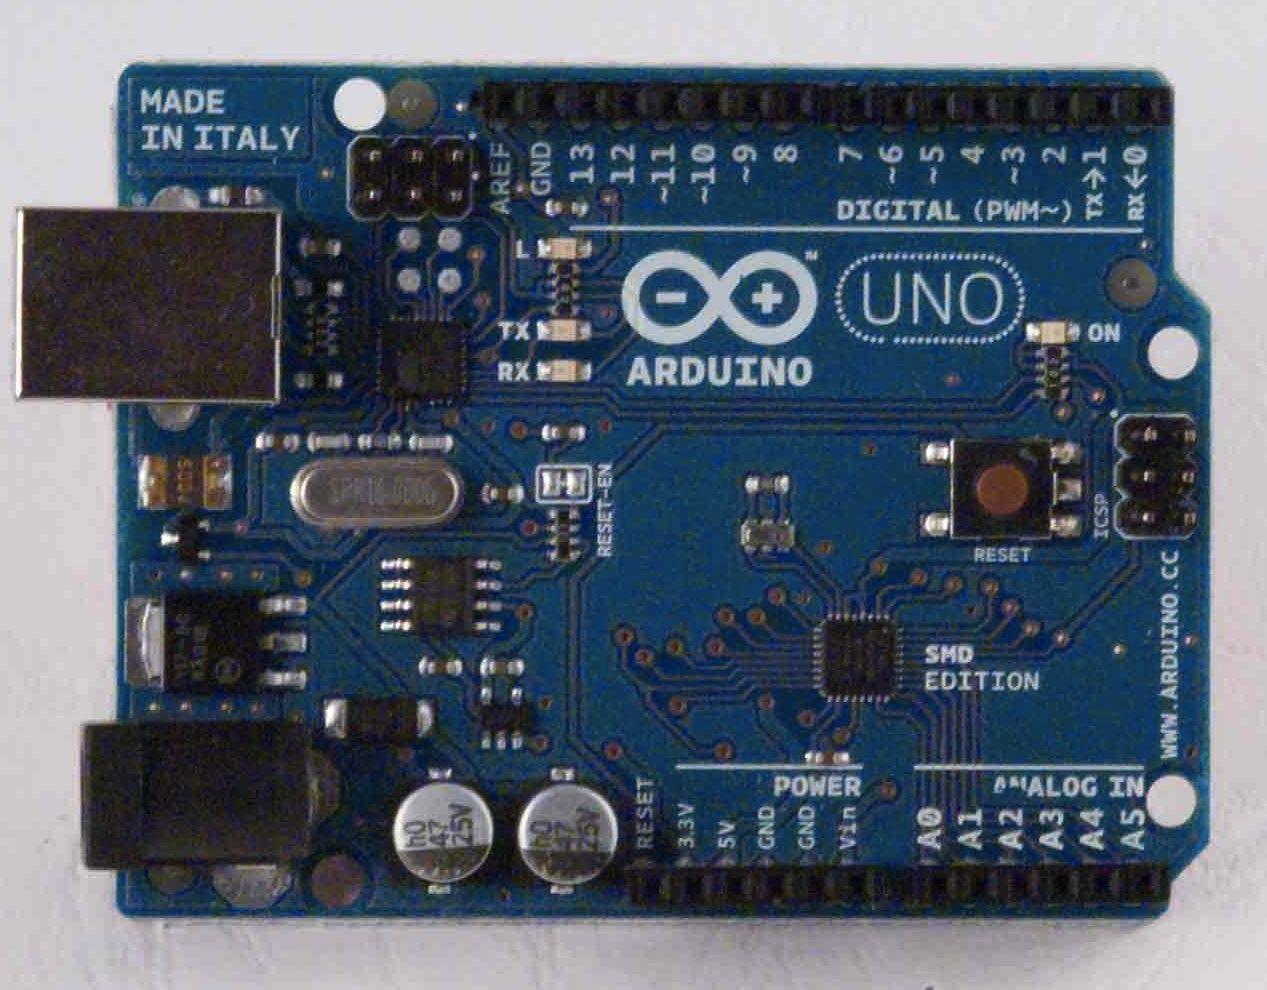 Arduino Arduinoboardunosmd Lines Refer To Items Located External The Printed Circuit Board Uno Smd